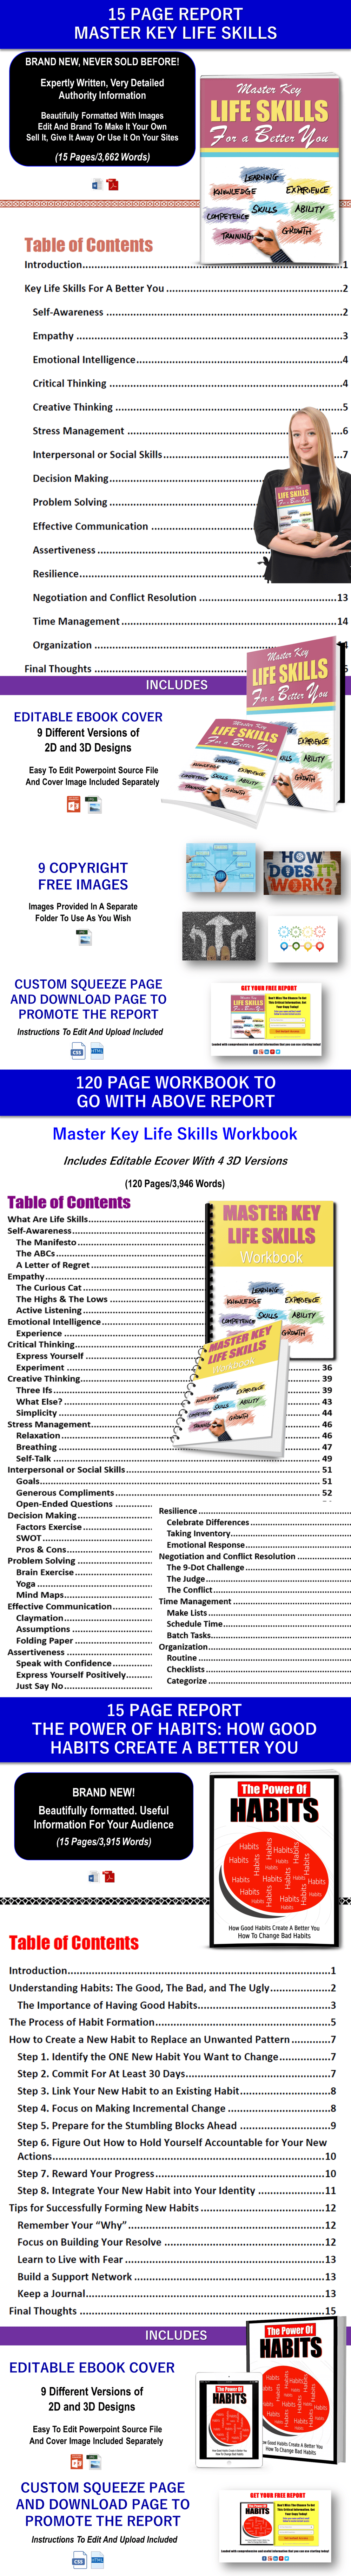 Master Life Skills Content - Private Label Rights